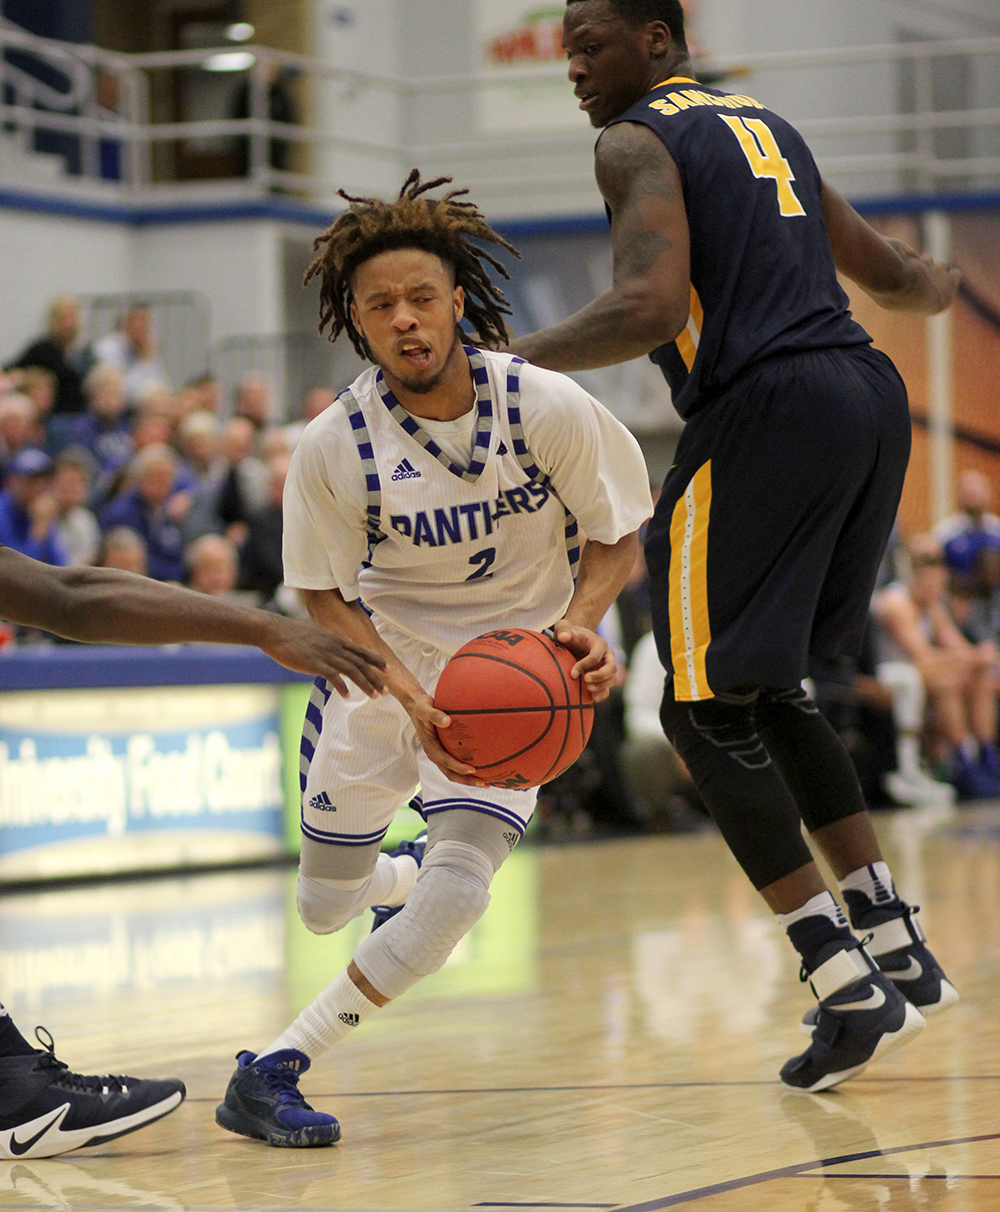 Junior Terrell Lewis drives past two Murray State defenders in the first half on the Panthers' 83-72 loss to the visiting Murray State Racers.